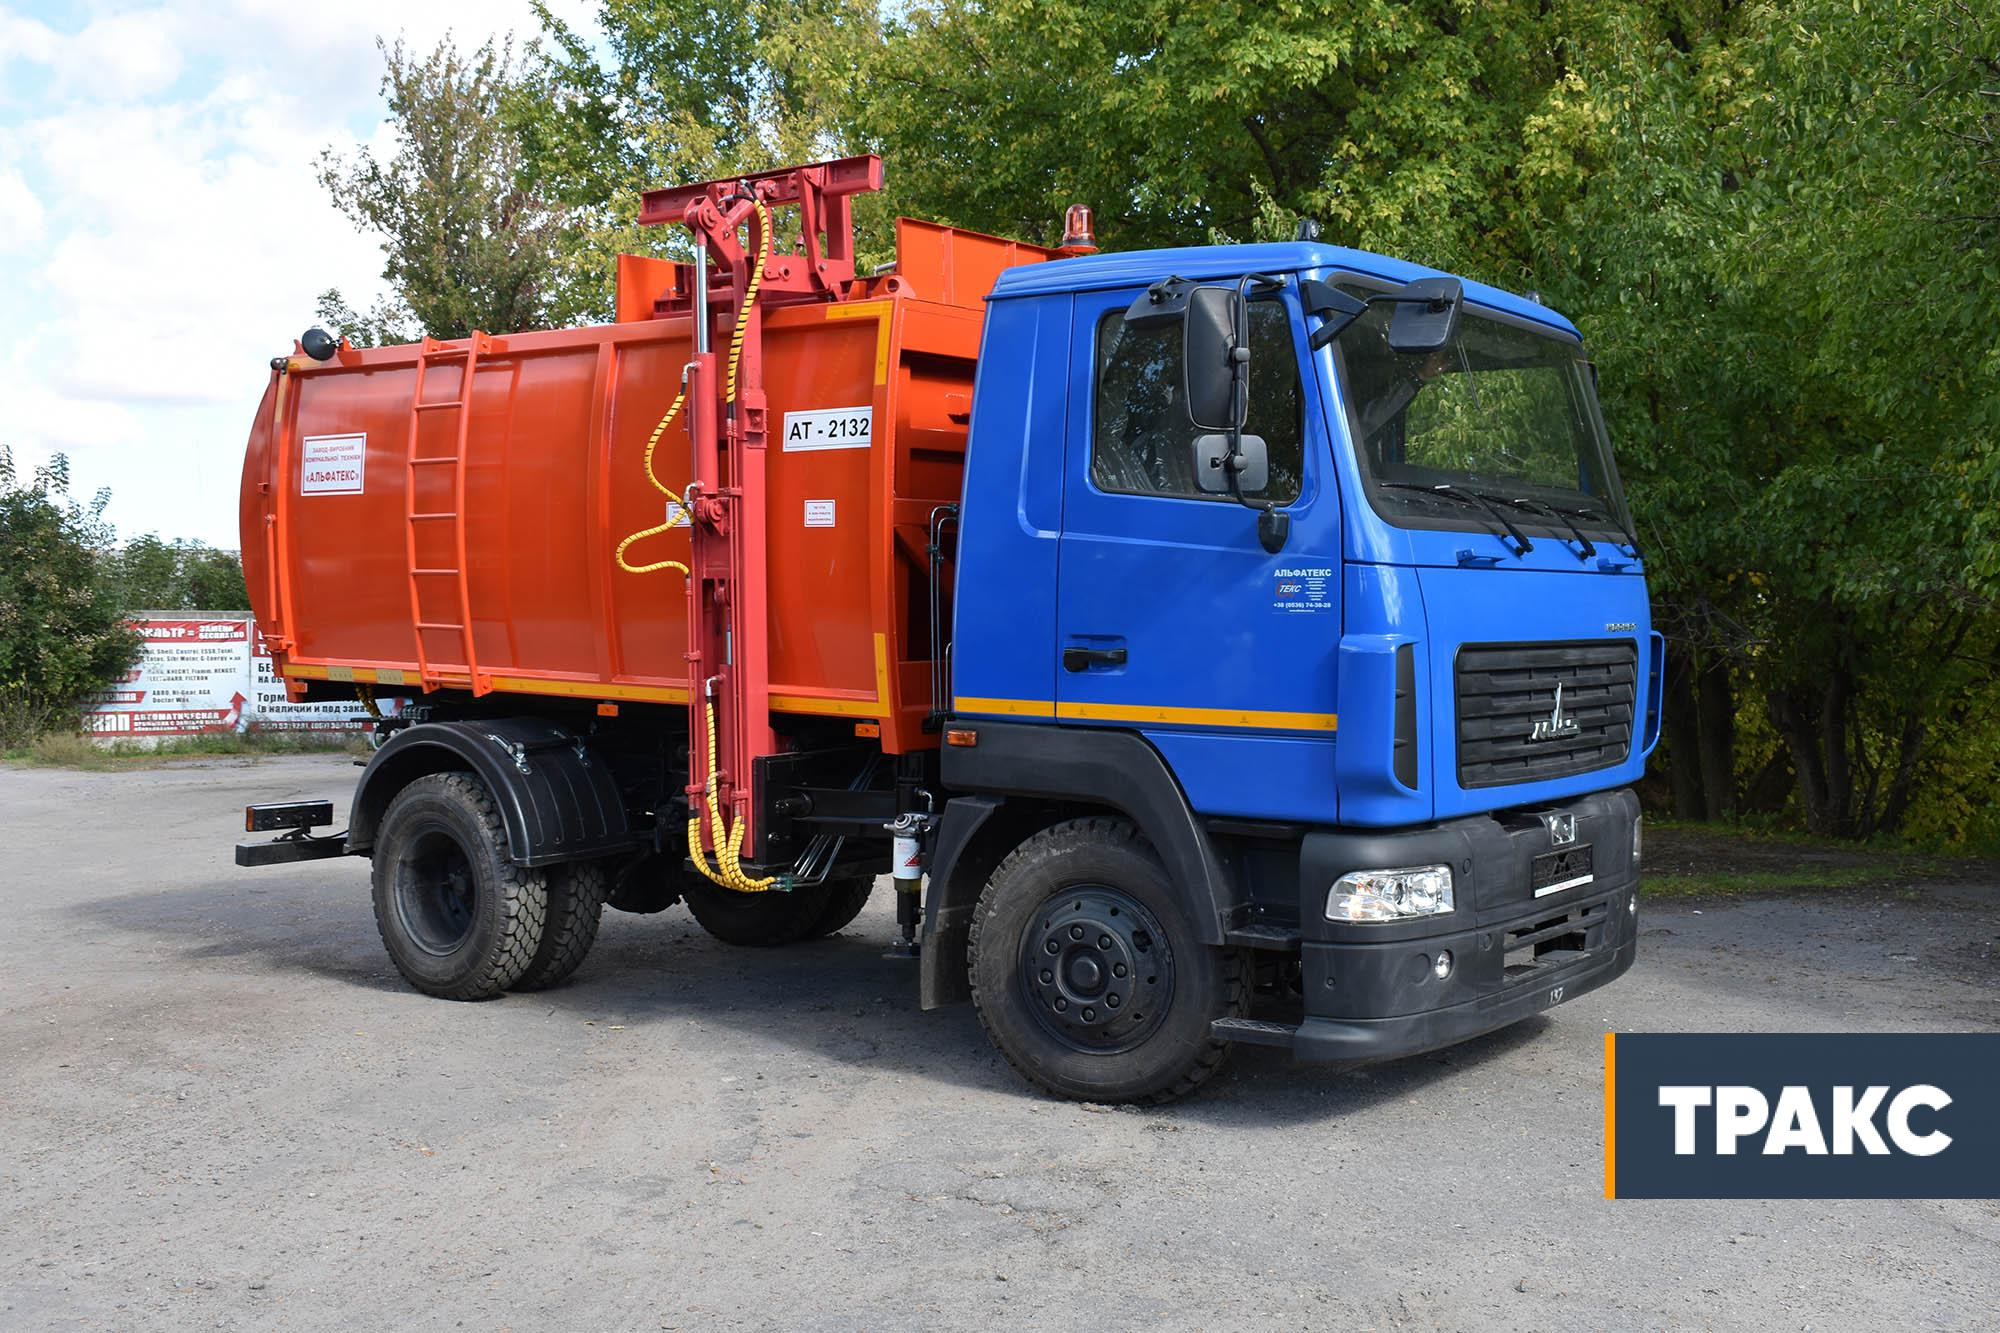 Garbage-truck-with-side-loading-AT-2132-on-MAZ-4381N2-chassis-1